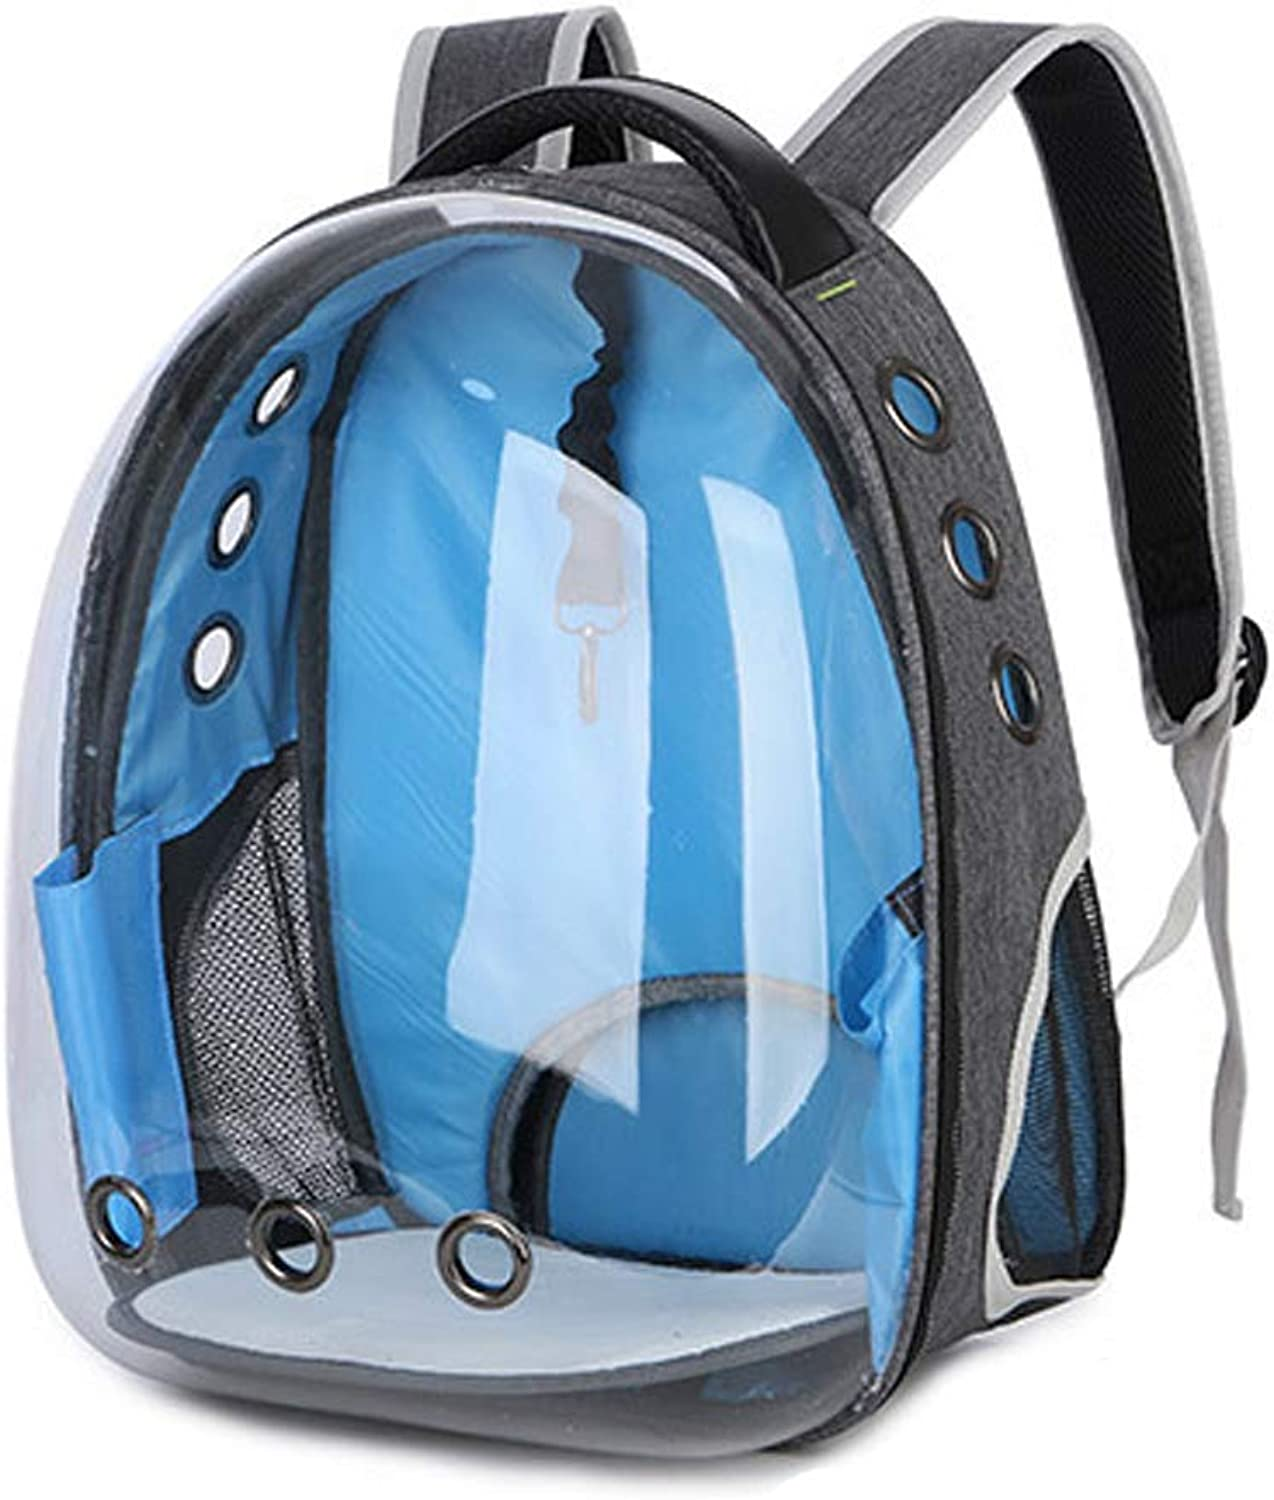 Pet Carrier Dog Backpack bluee Space Bag Transparent and Breathable